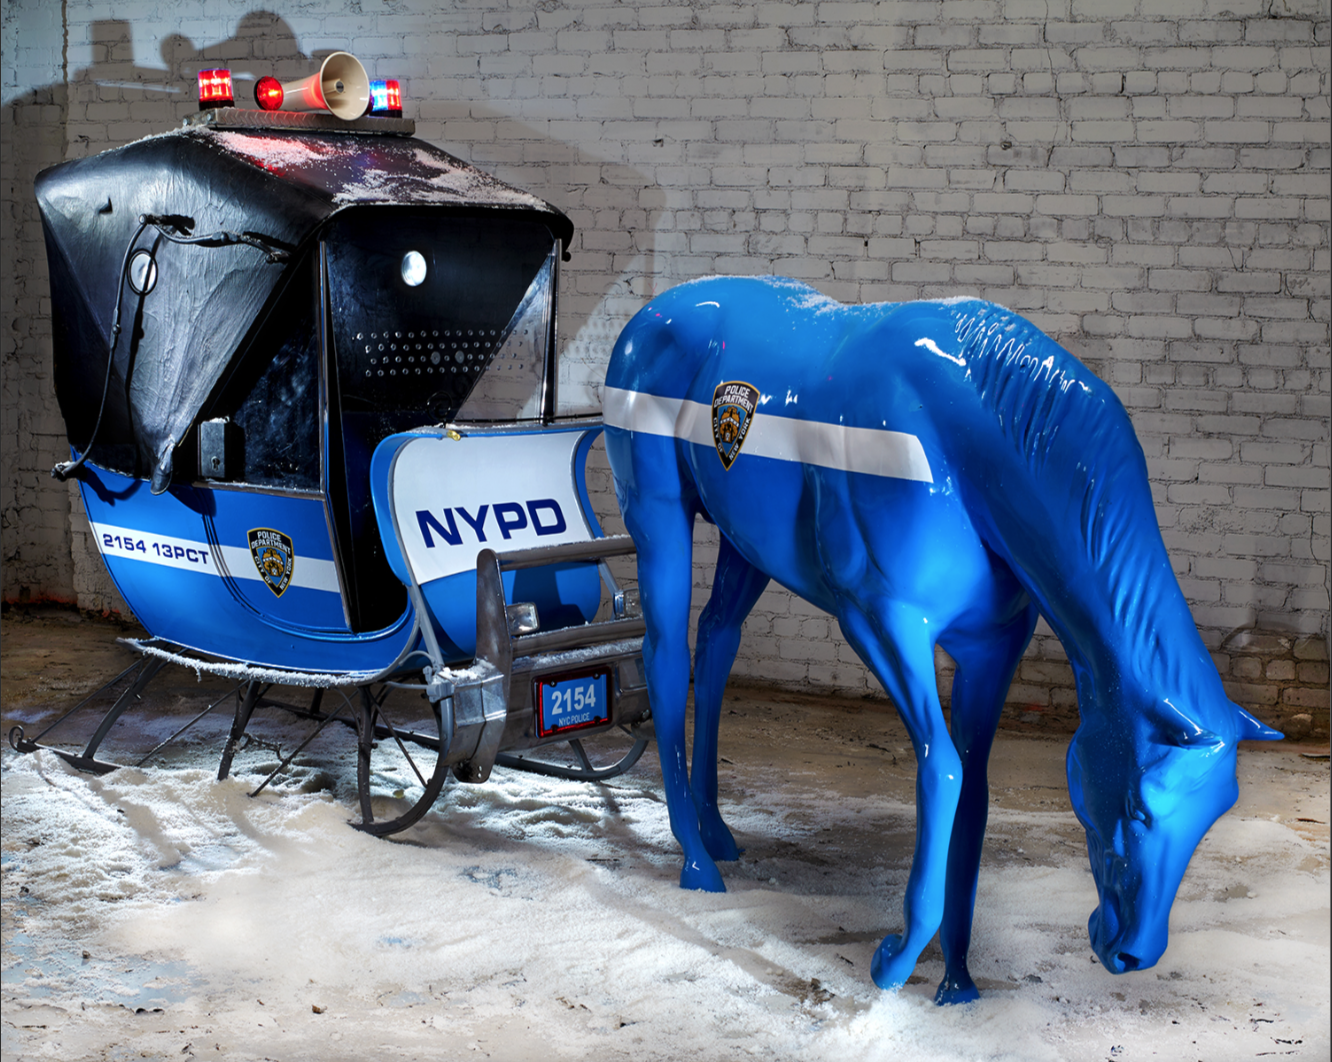 NYPD Police Sleigh